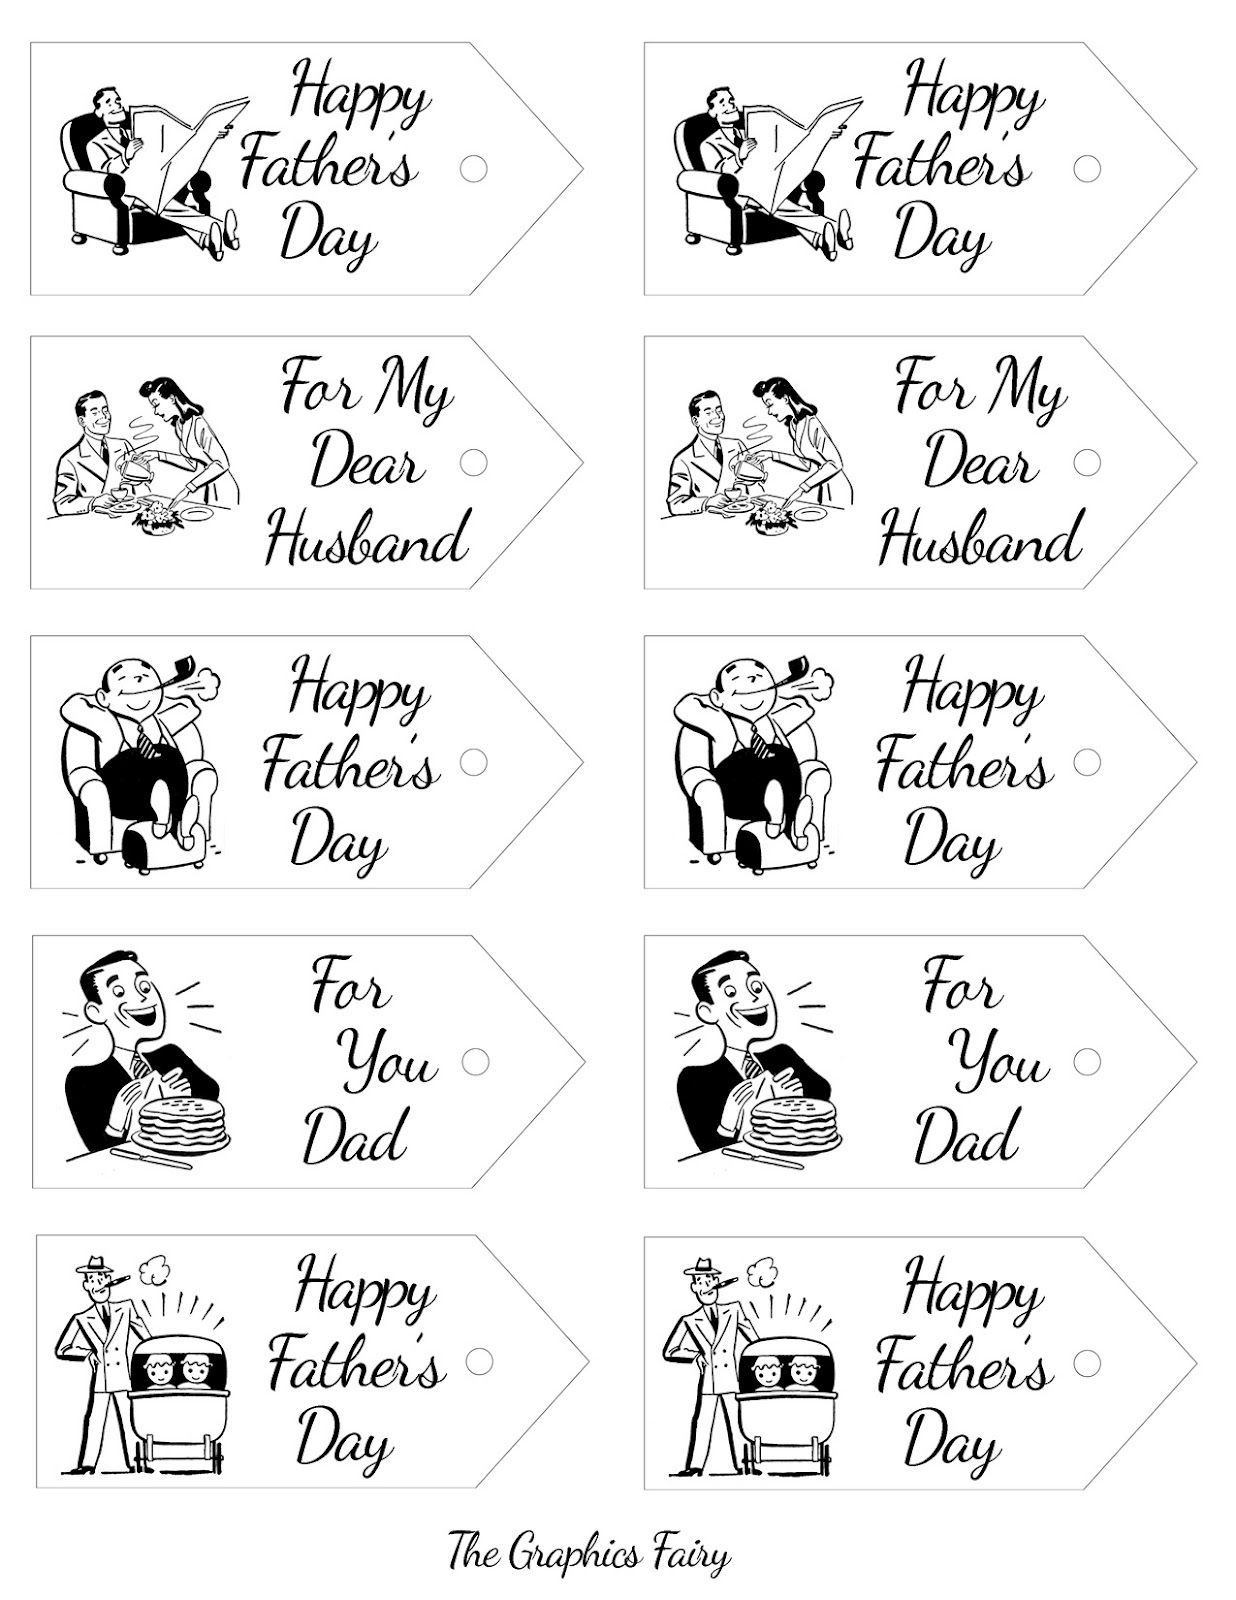 The Graphics Fairy - Crafts: Father's Day Printable - Retro Gift Tags